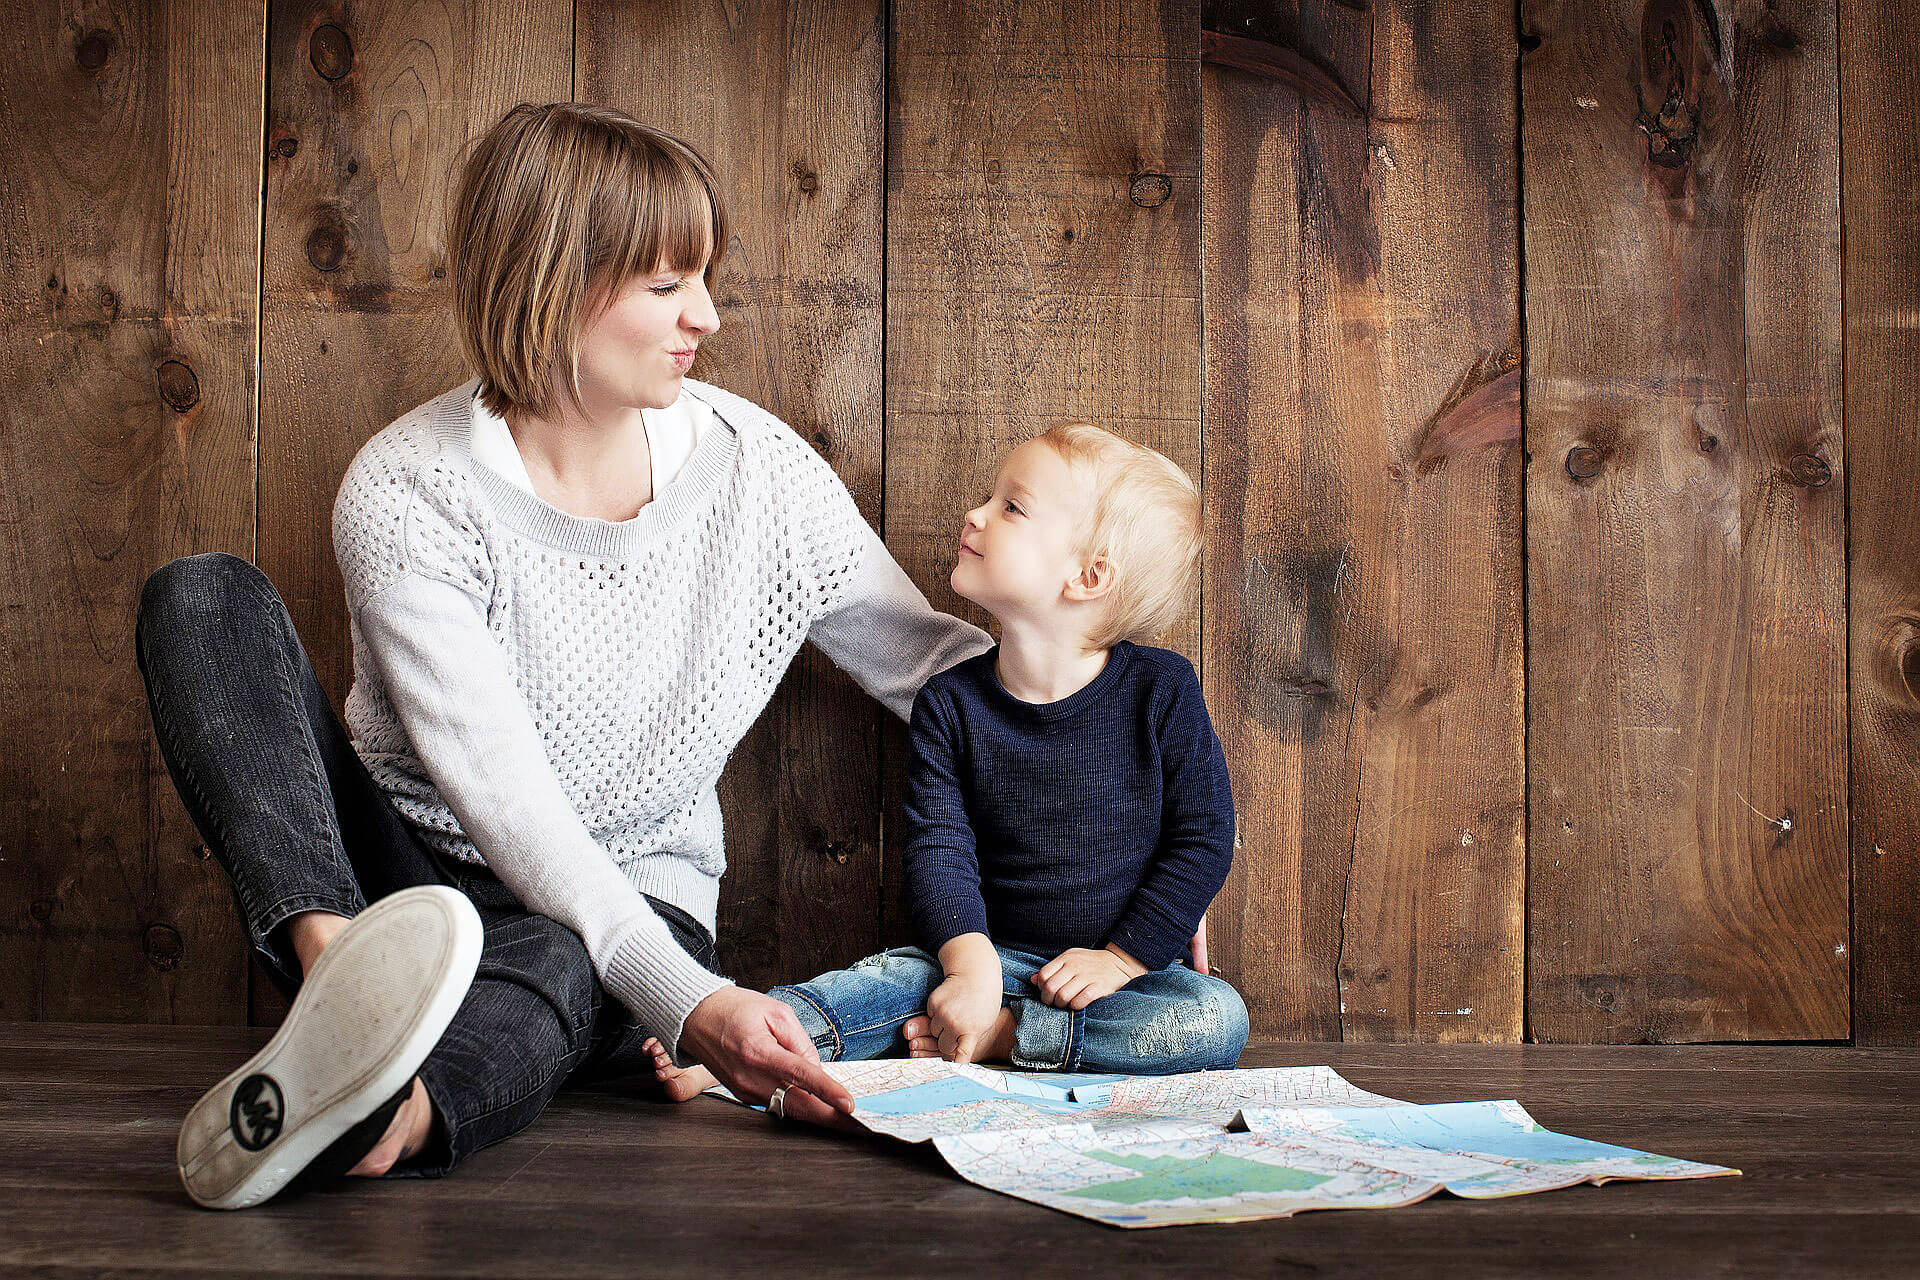 Mother and child sitting on the floor, leaning against the wood-lined wall and map on the floor.